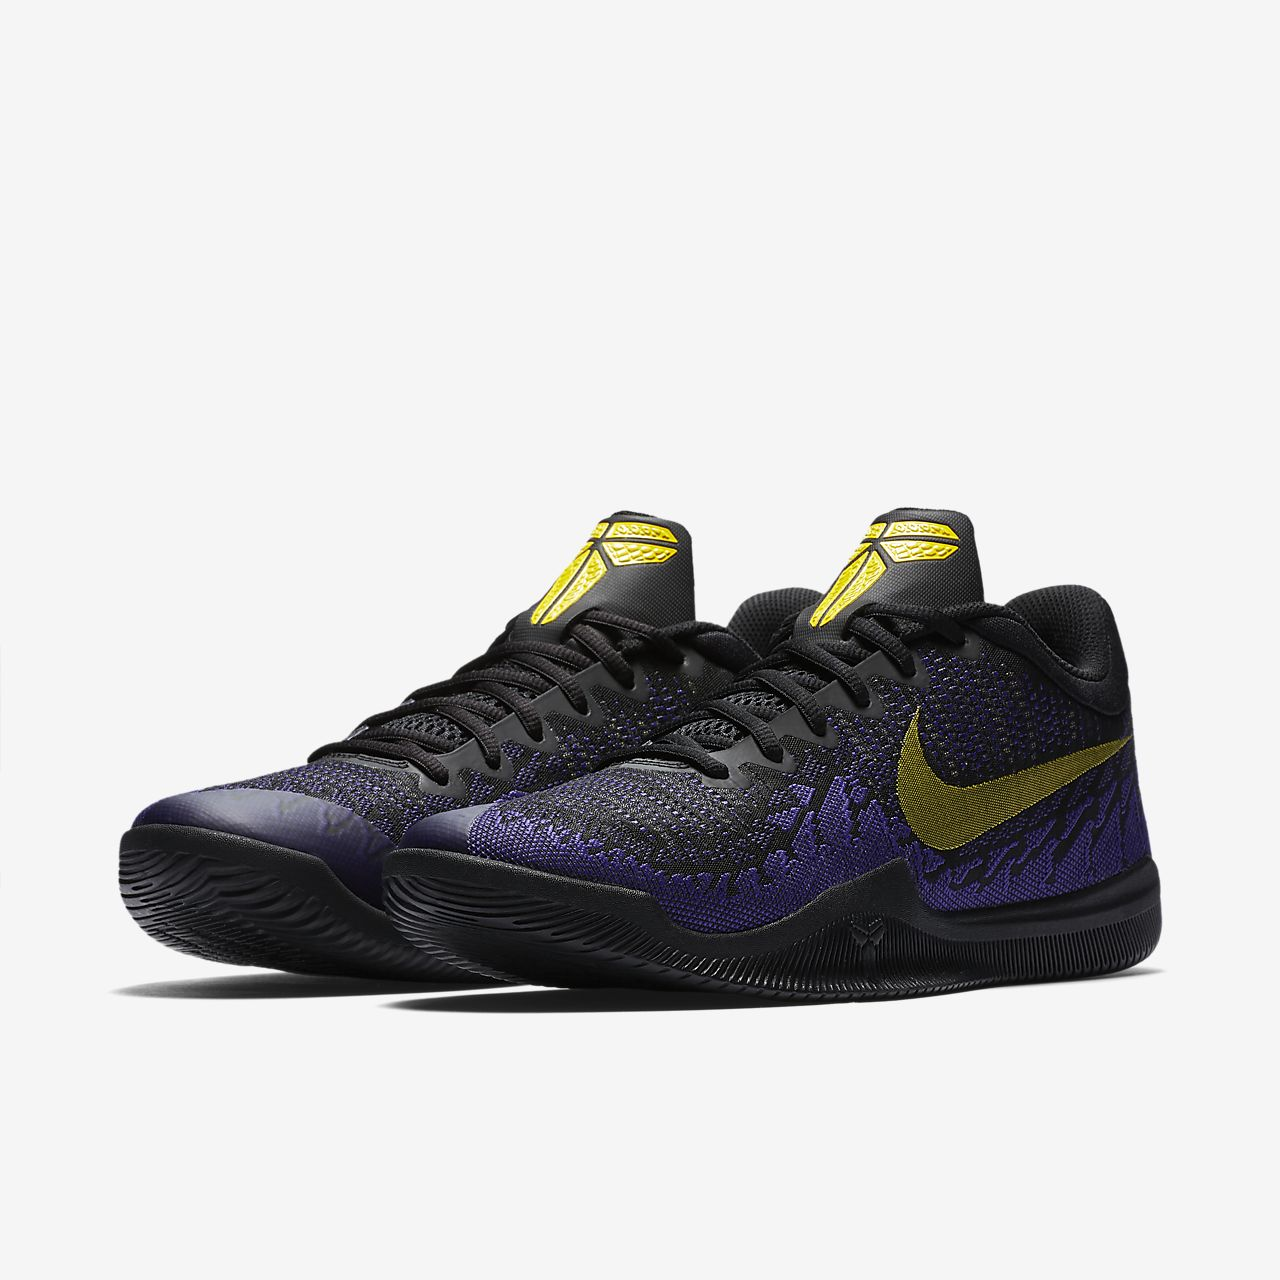 black mamba 24 shoes review